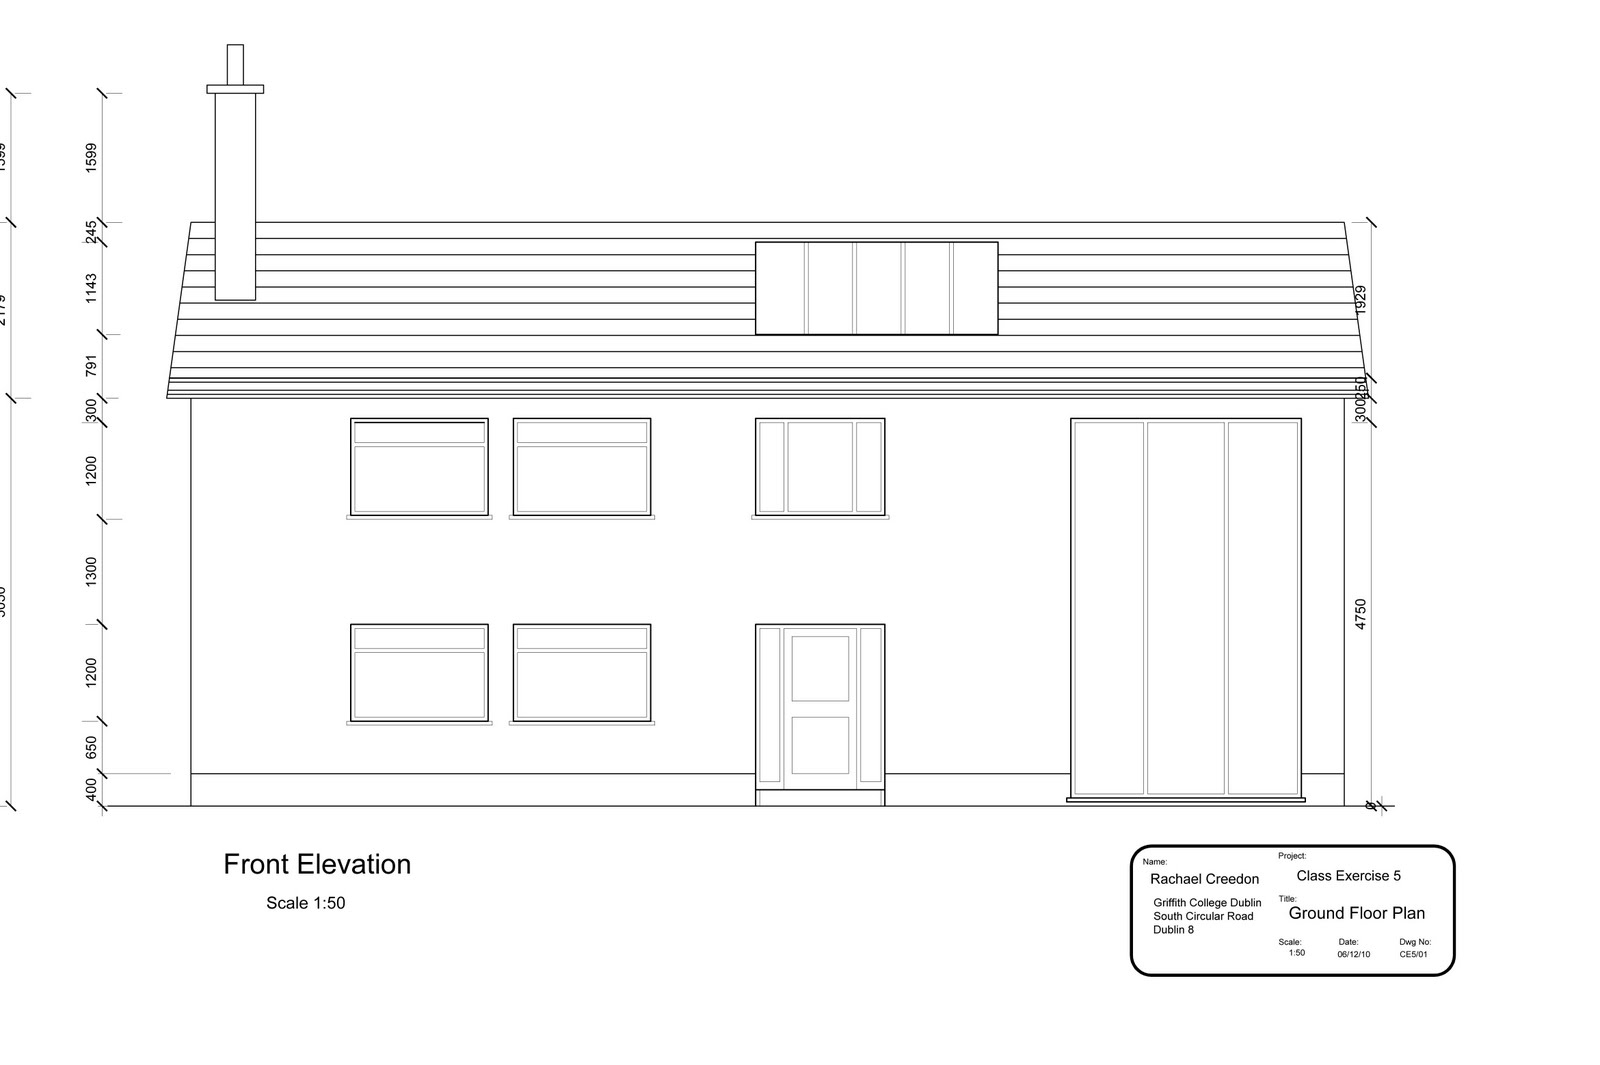 Ground Floor Plan Front Elevation : Spaghetti on the wall d cad